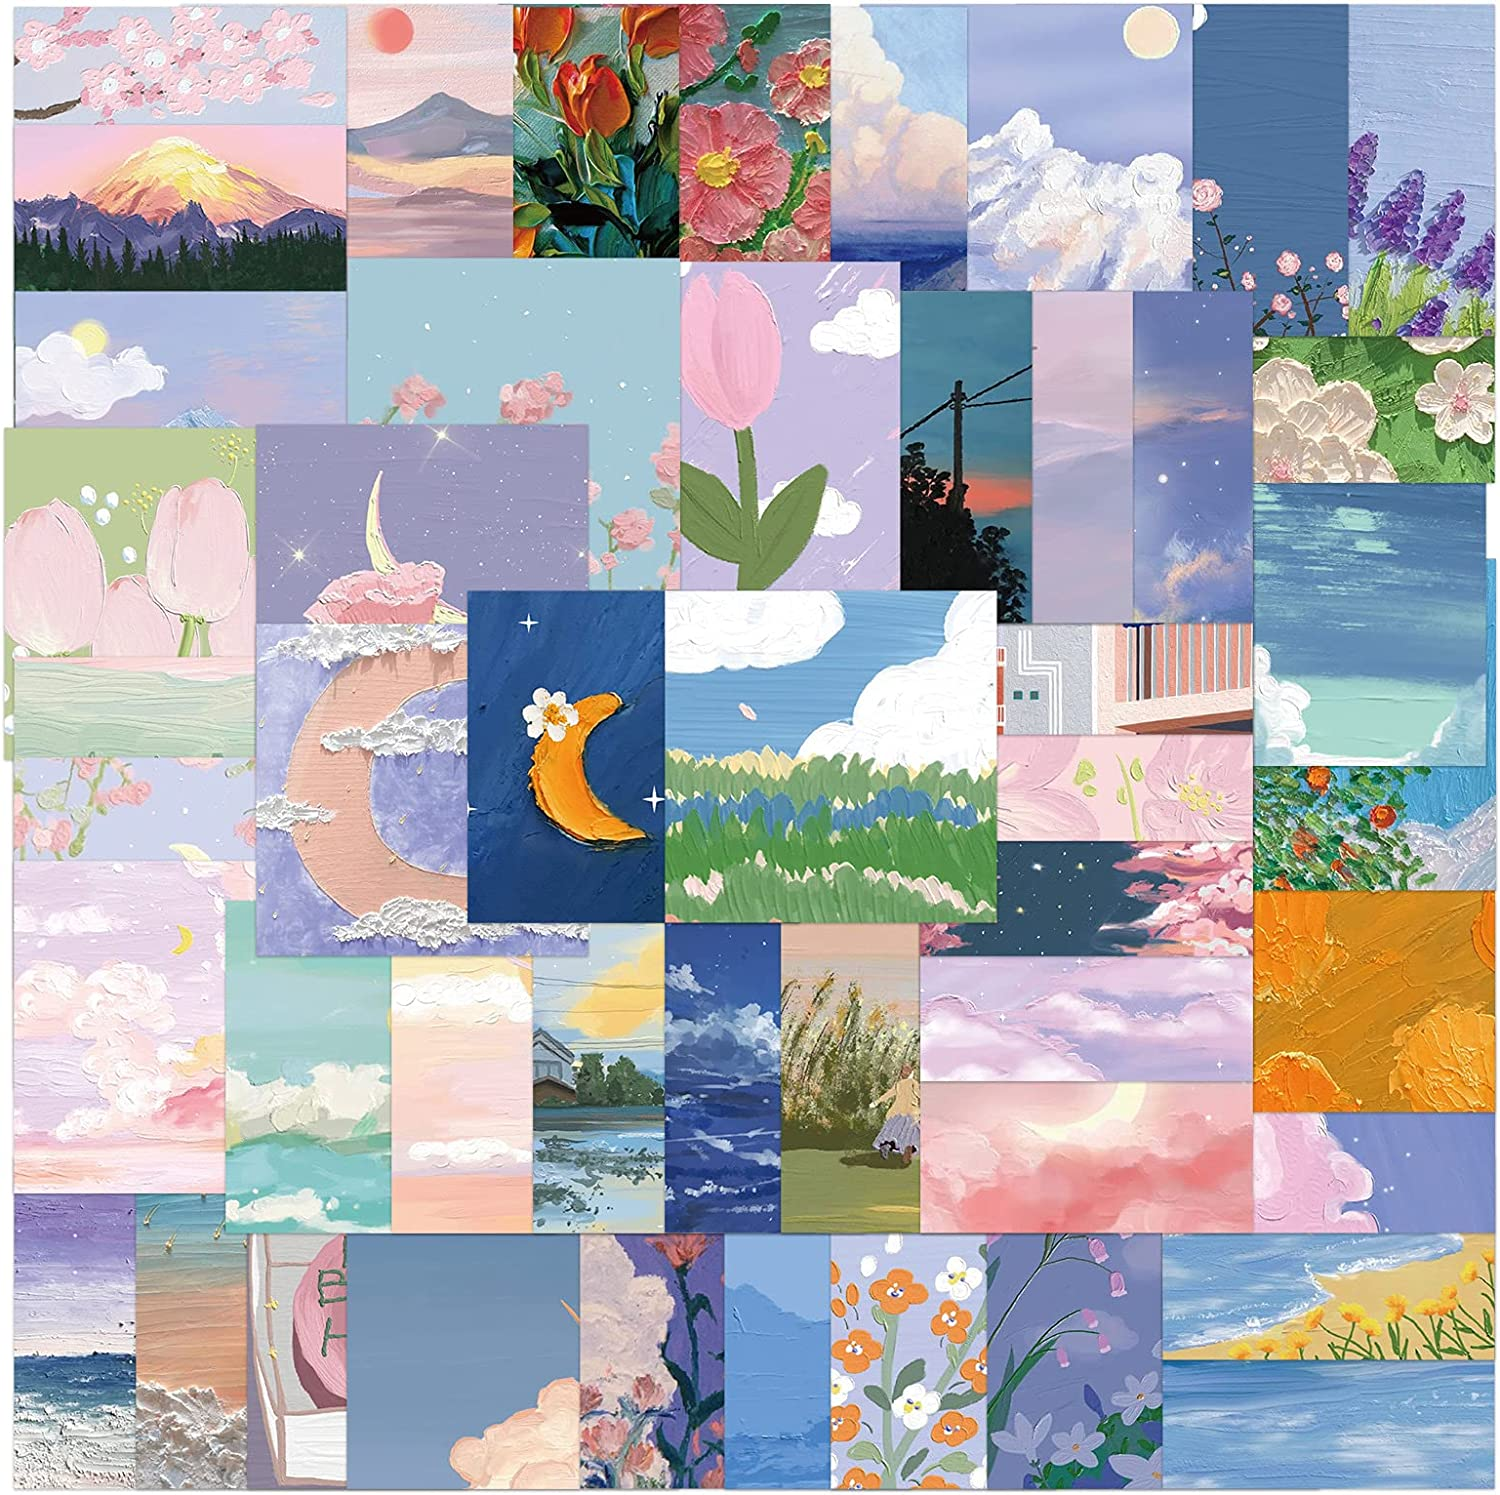 MTOP Landscape Oil Painting Stickers, 56pcs Vinyl Waterproof Stickers for Laptop, Water Bottles, Bumper,Computer, Phone, Stickers and Decals